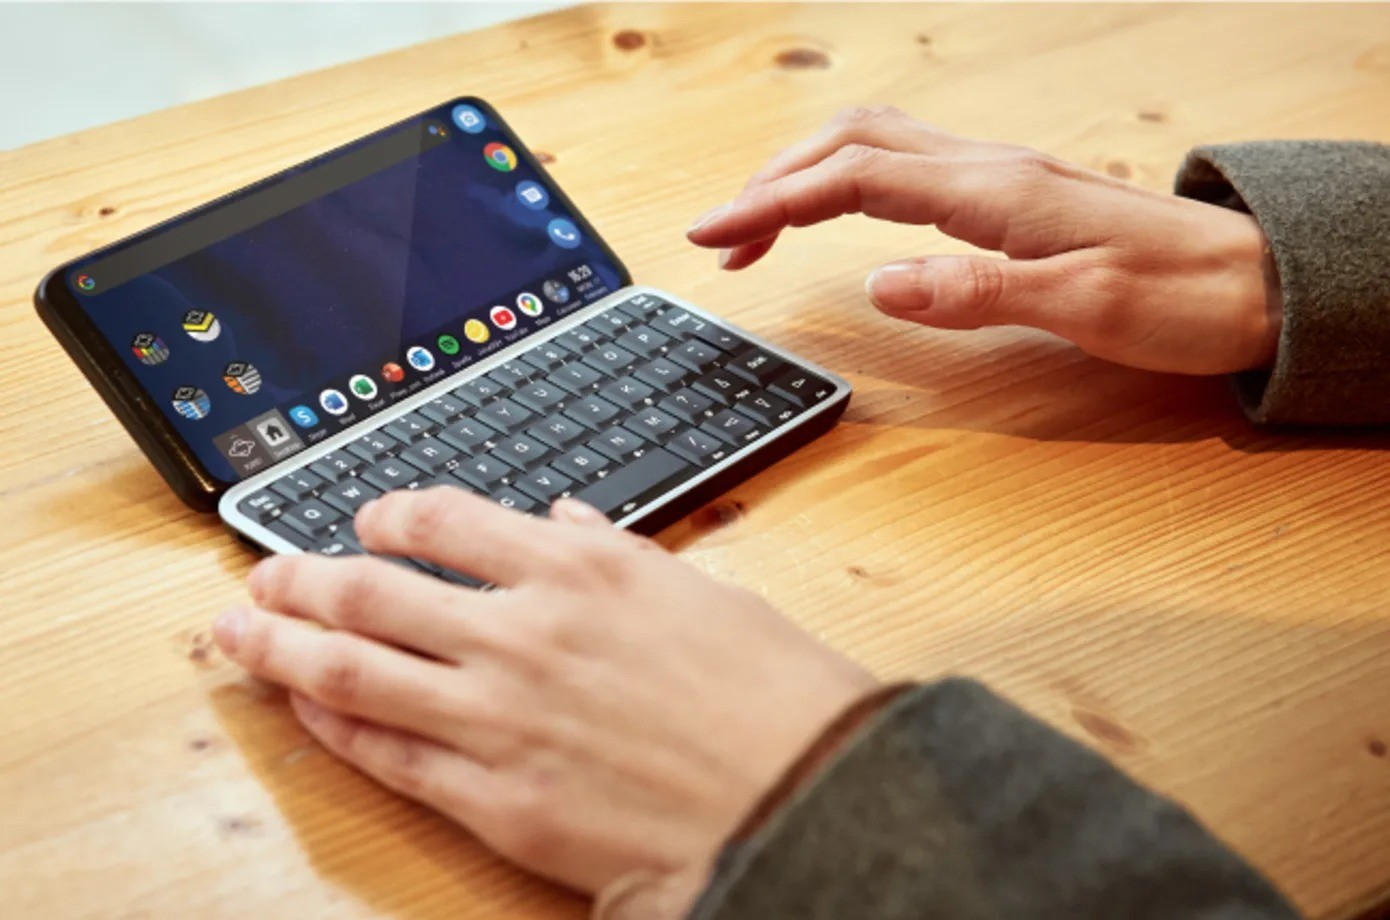 Planet Computers Launches Smartphone Featuring Keyboard